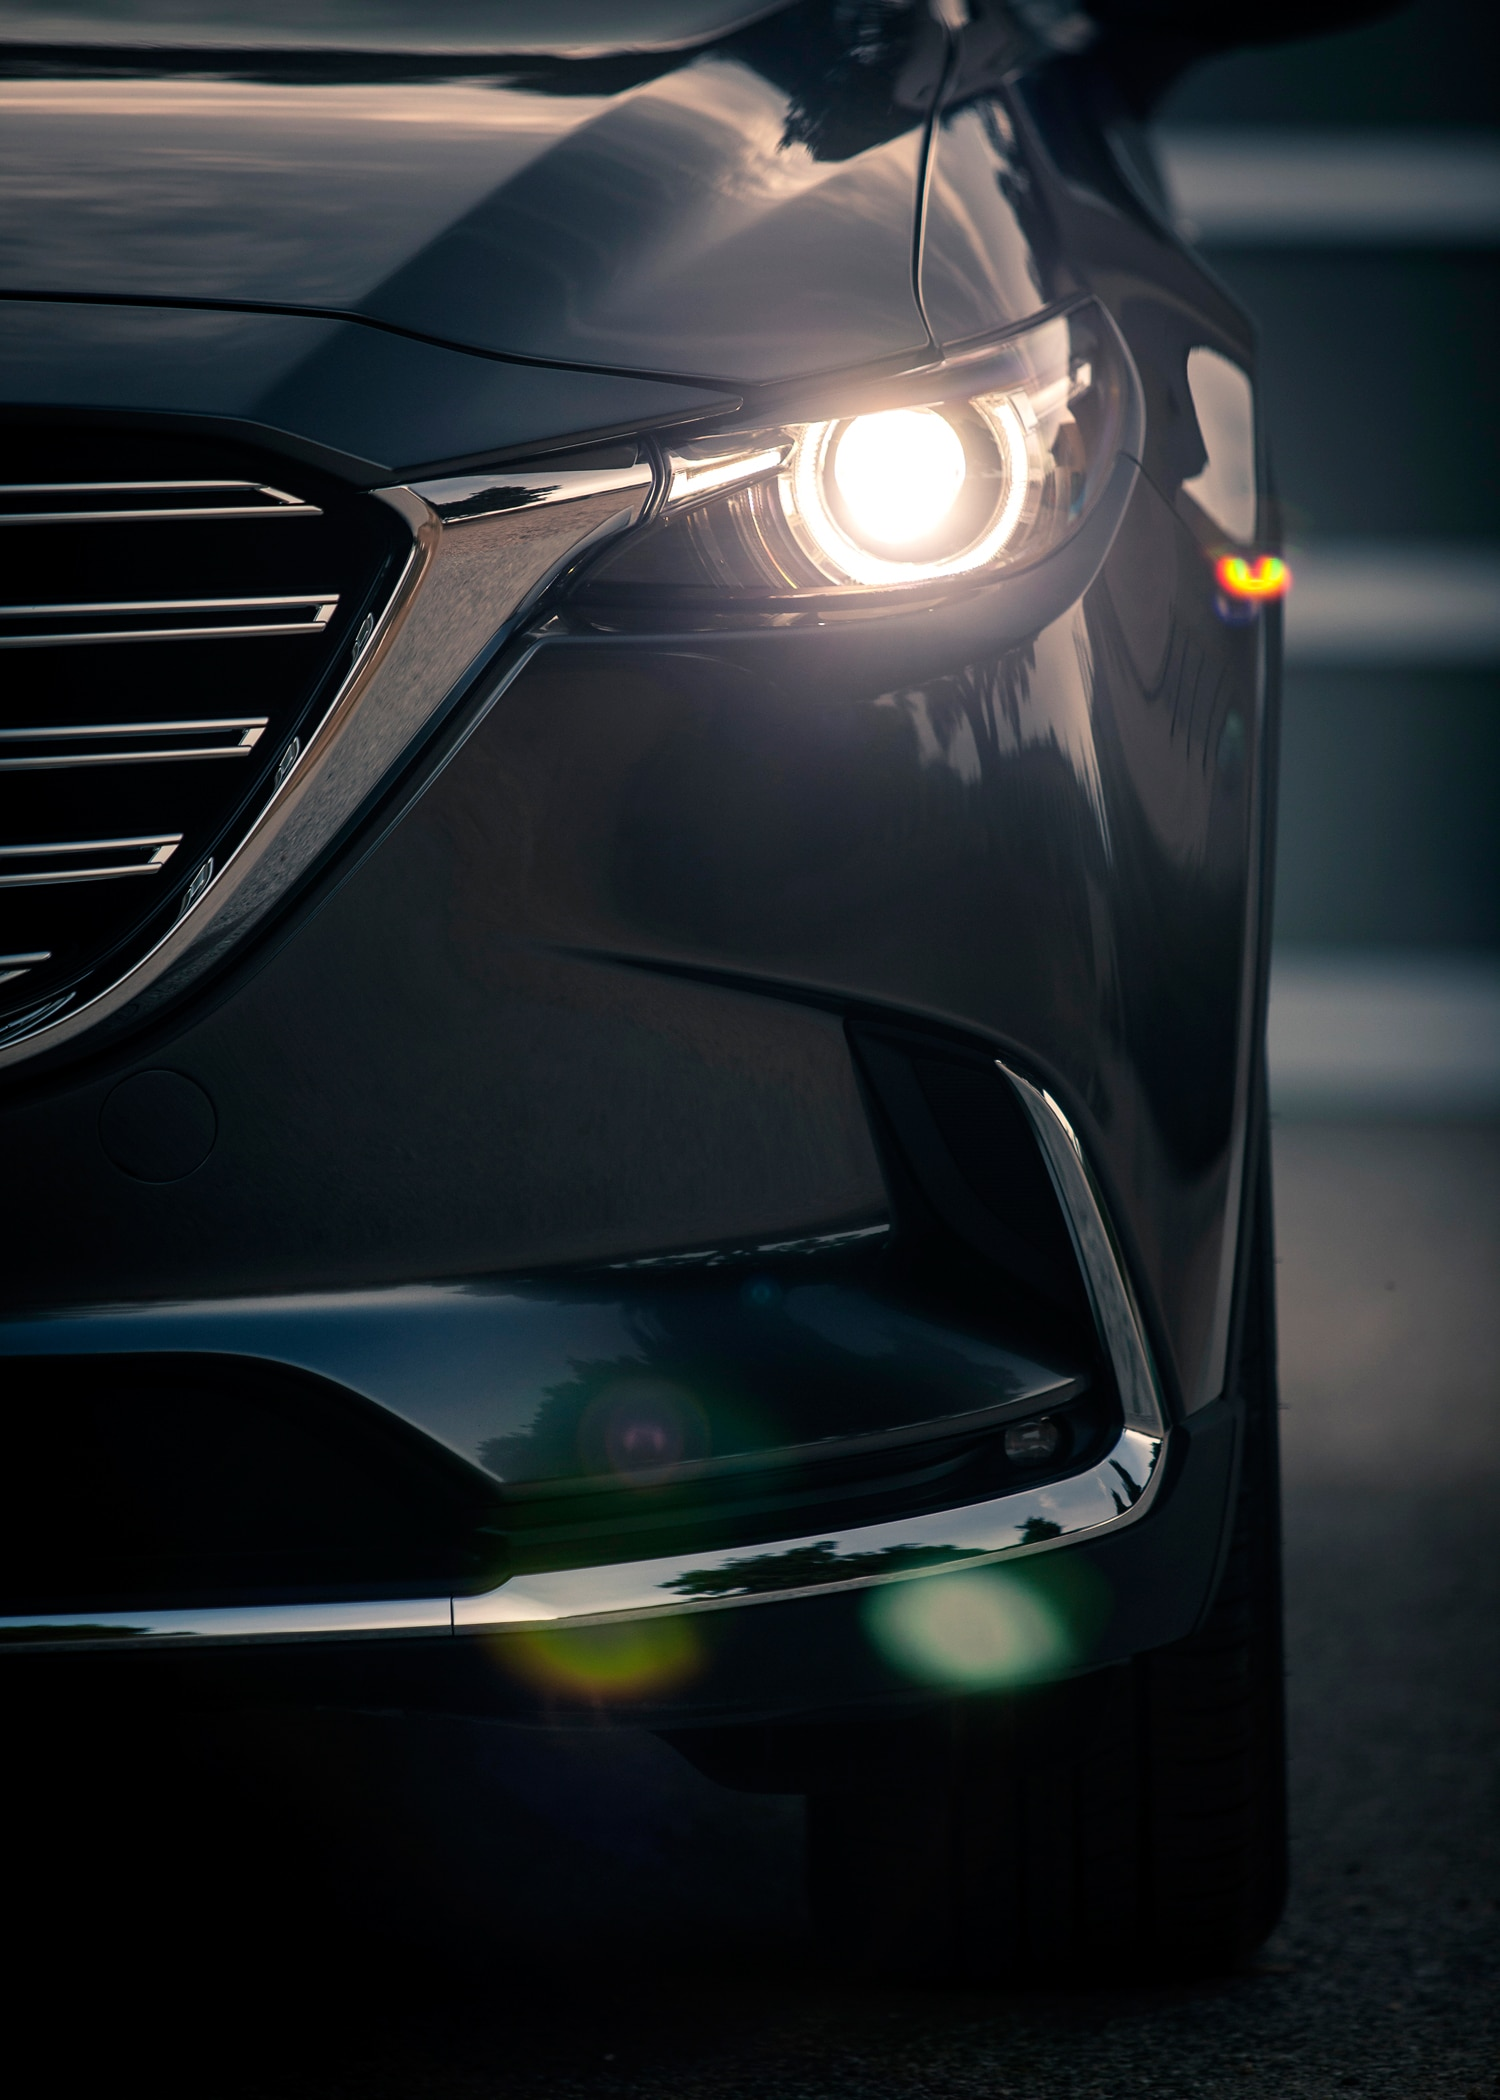 Mazda 6 Led Grille Accent Lighting